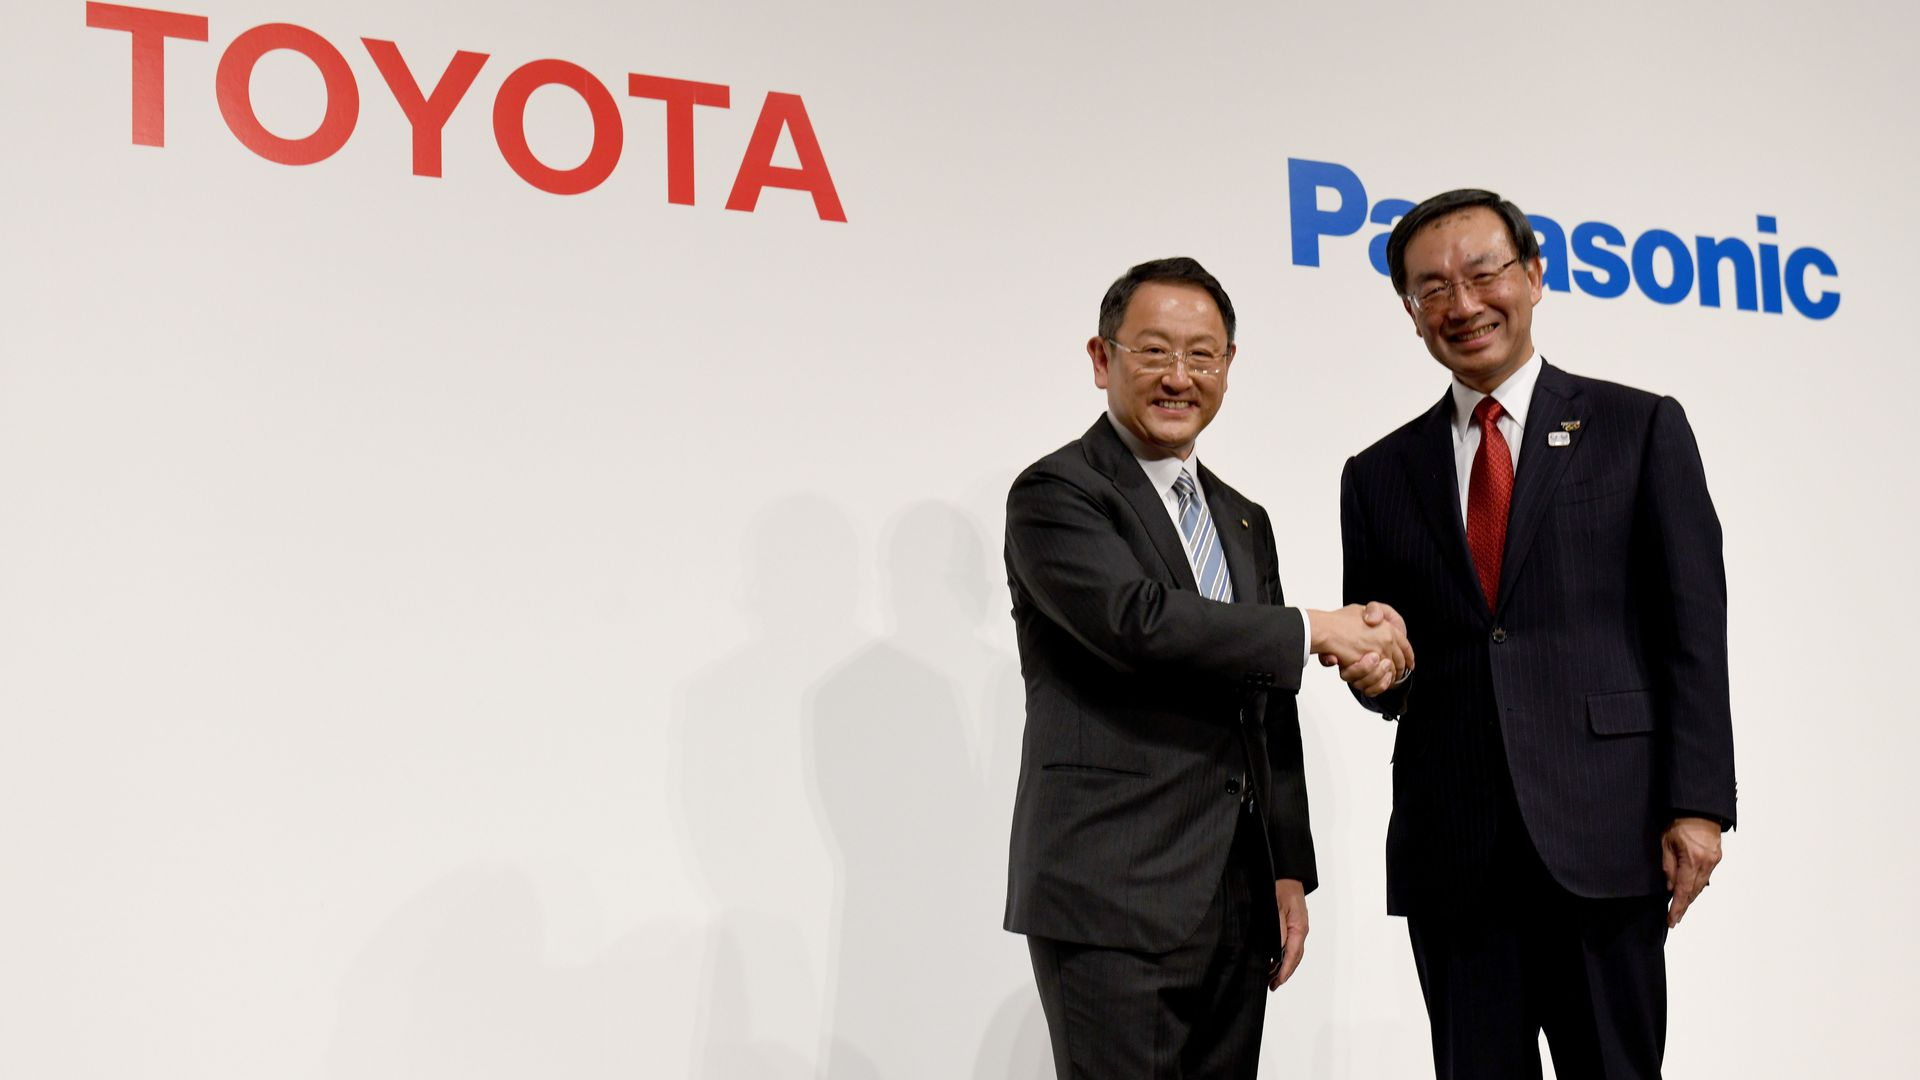 Toyota and Panasonic presidents